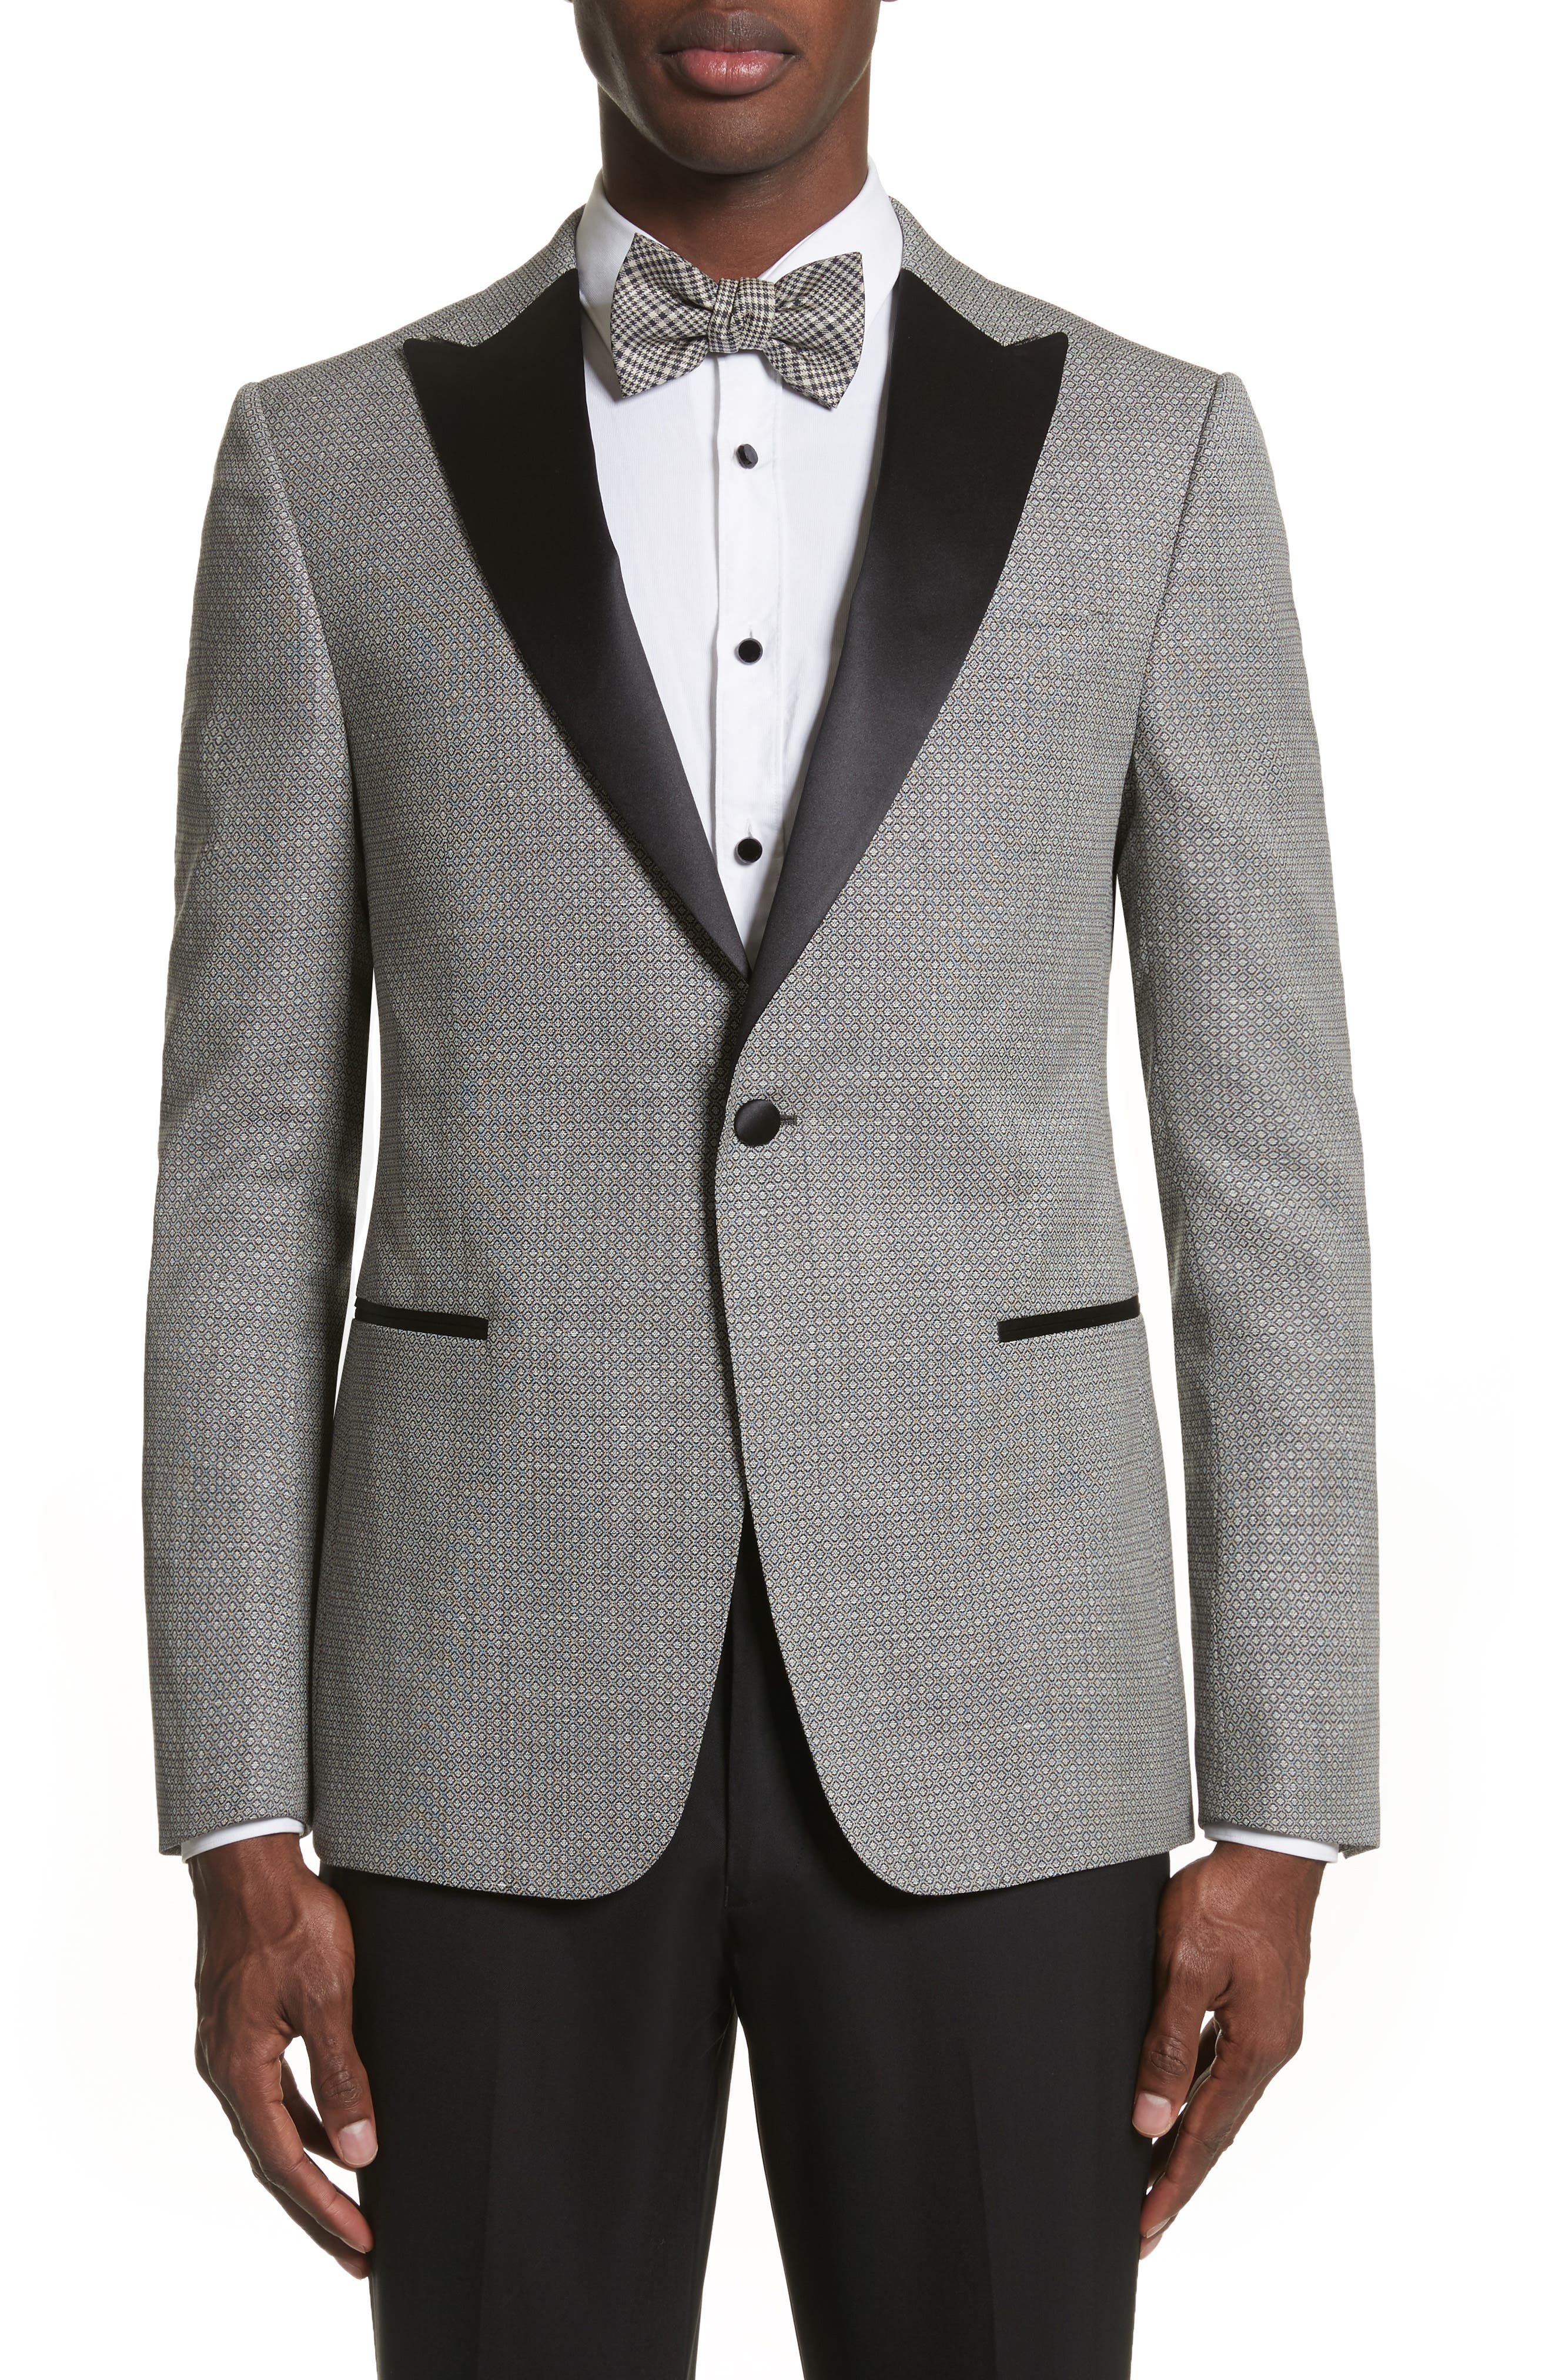 Alternate Image 1 Selected - Z Zegna Classic Fit Stretch Wool & Linen Dinner Jacket